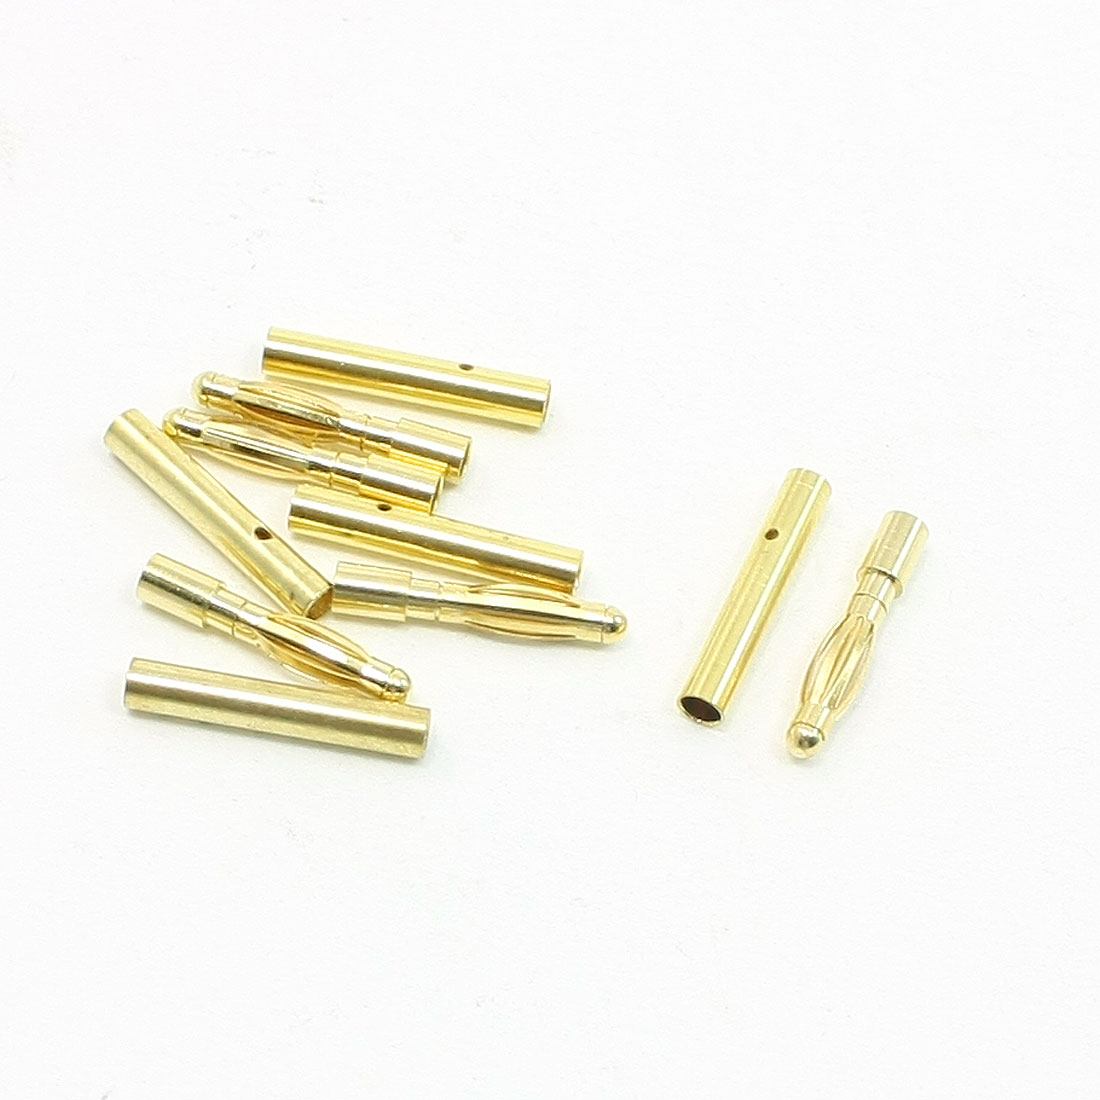 5 Pcs Gold Tone Metal RC Audio Video Telephone 2mm Dia Banana Connectors